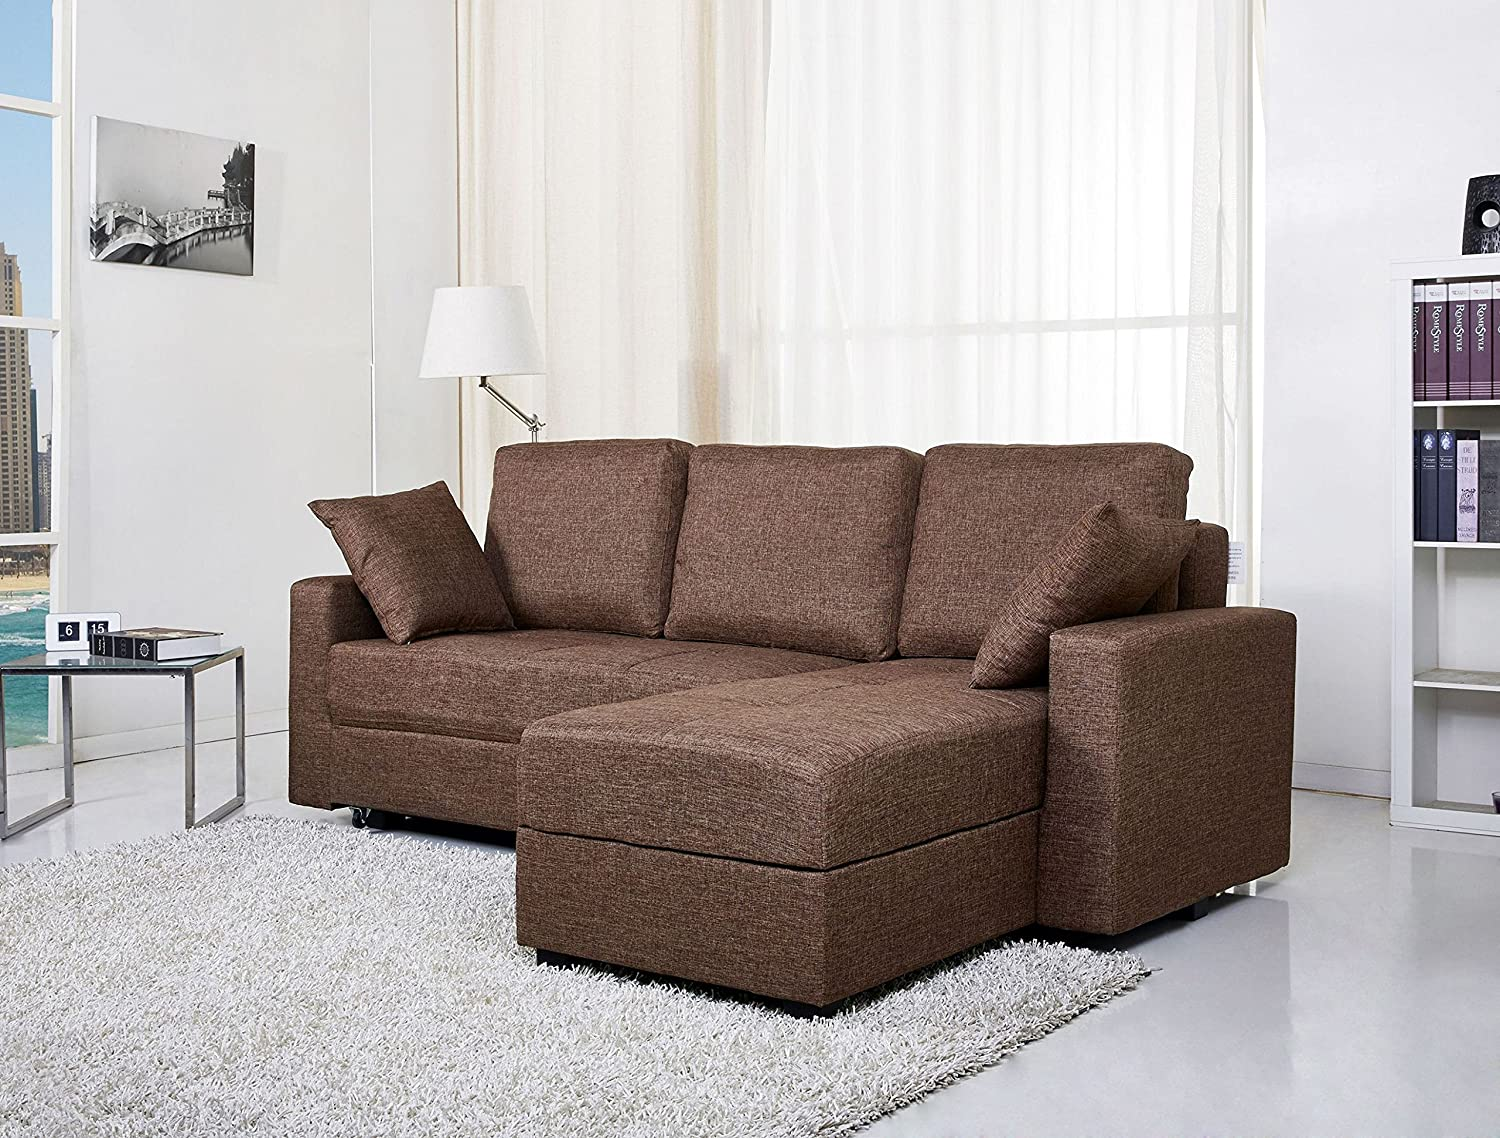 Delicieux Amazon.com: Gold Sparrow Aspen Convertible Sectional Storage Sofa Bed, Ash:  Home U0026 Kitchen